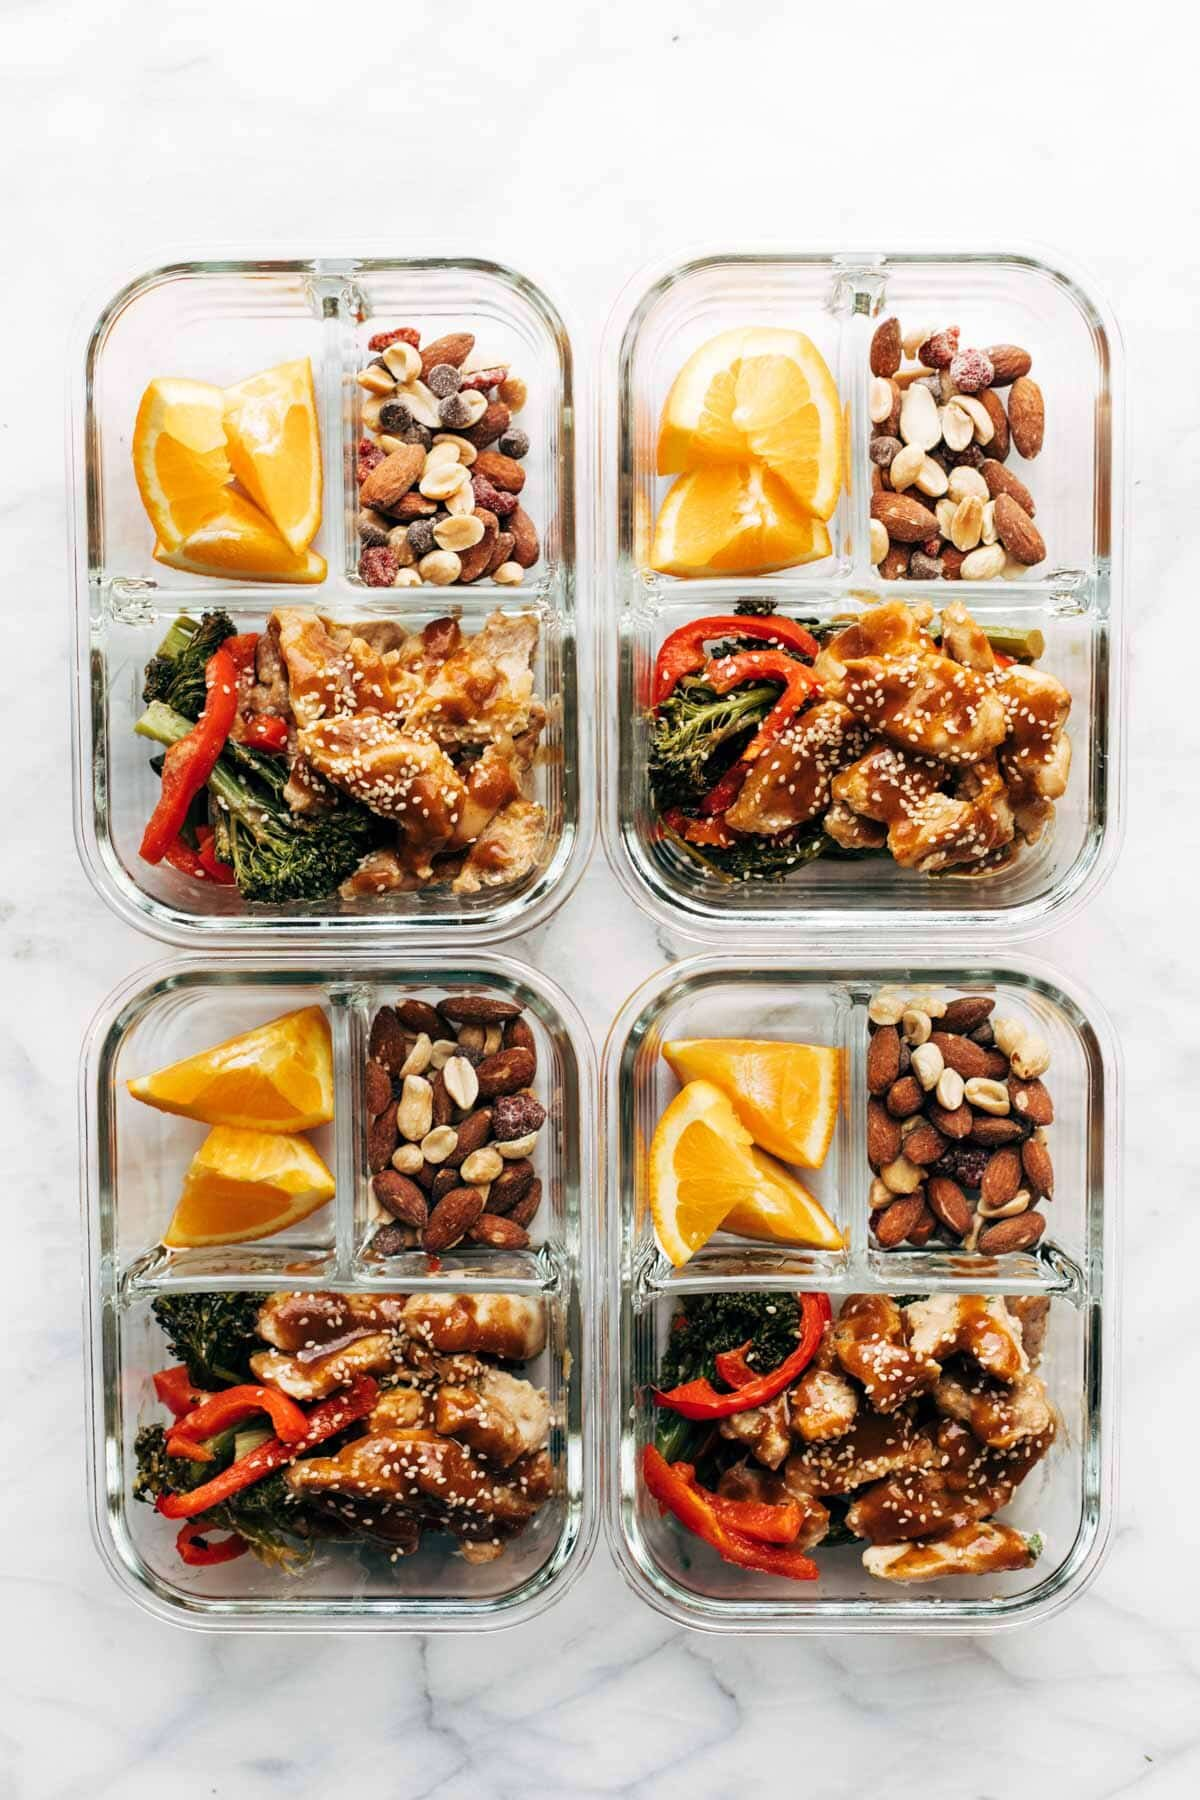 Garlic-Chicken-Chicken-and-Broccoli-in-Containers.jpg